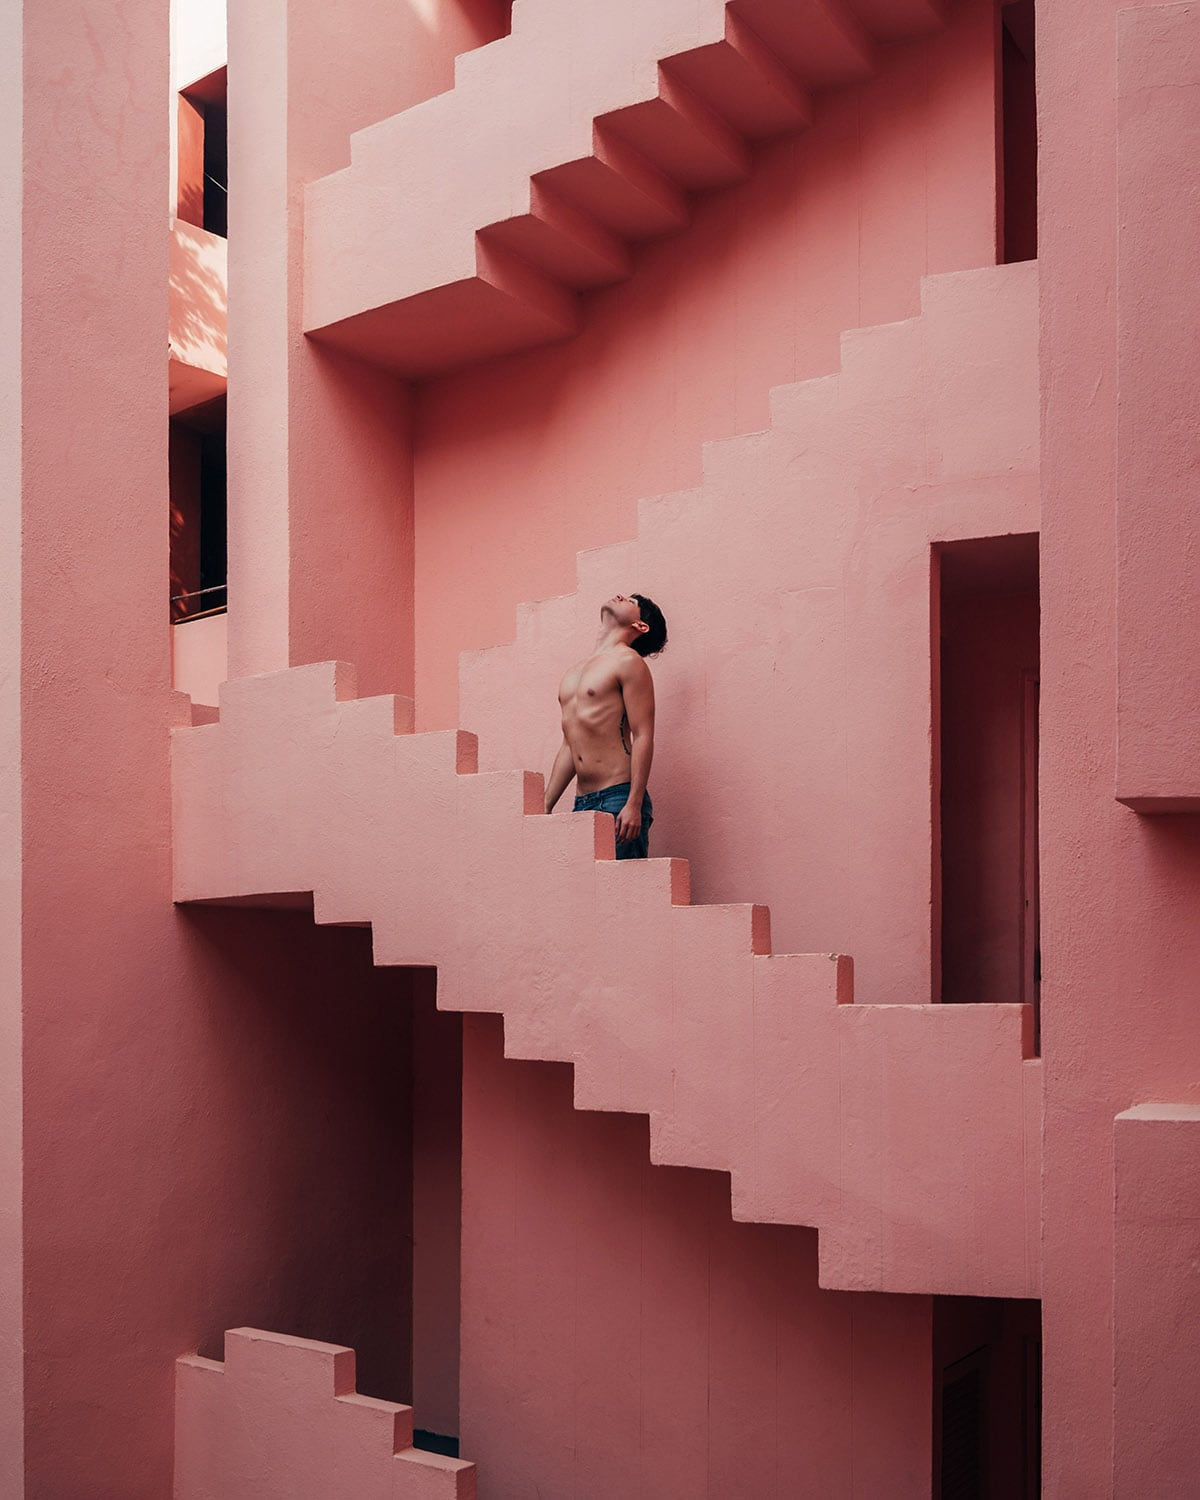 Conceptual portrait and architectural photography shot by London editorial fashion photographer Ira Giorgetti